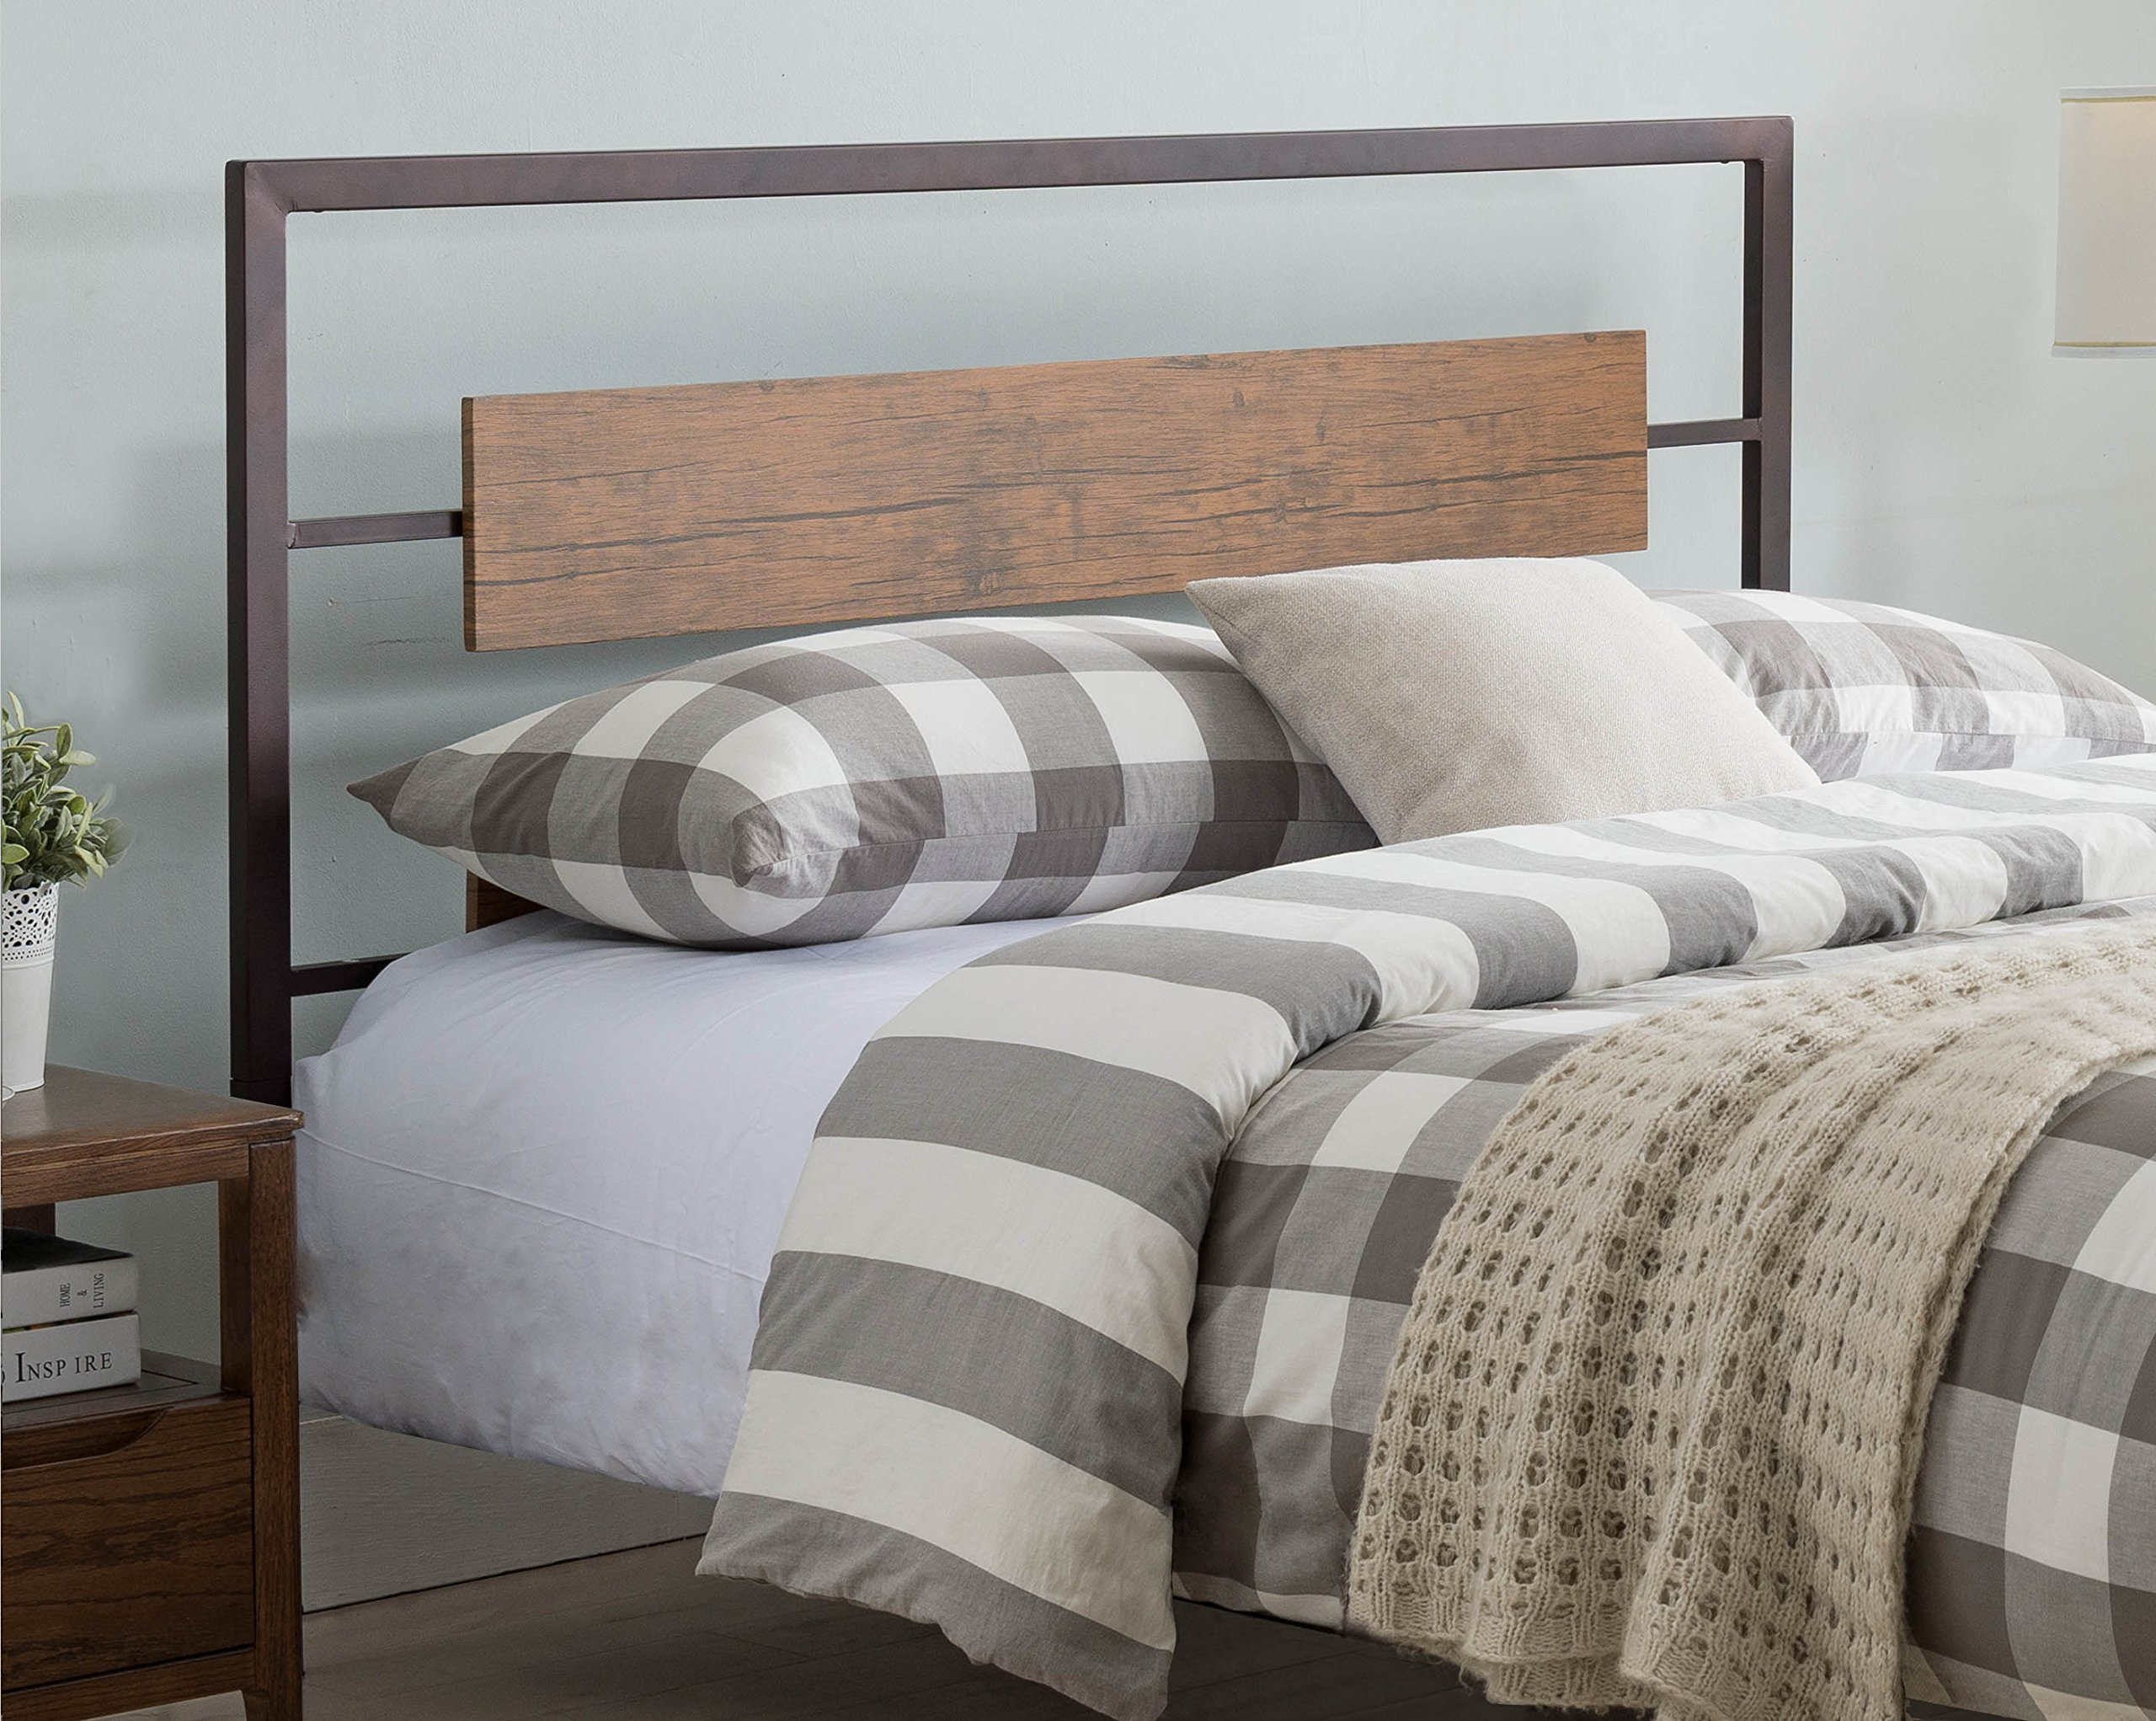 Kings Brand Furniture – Verona Pewter Metal/Walnut Wood Full Size Headboard